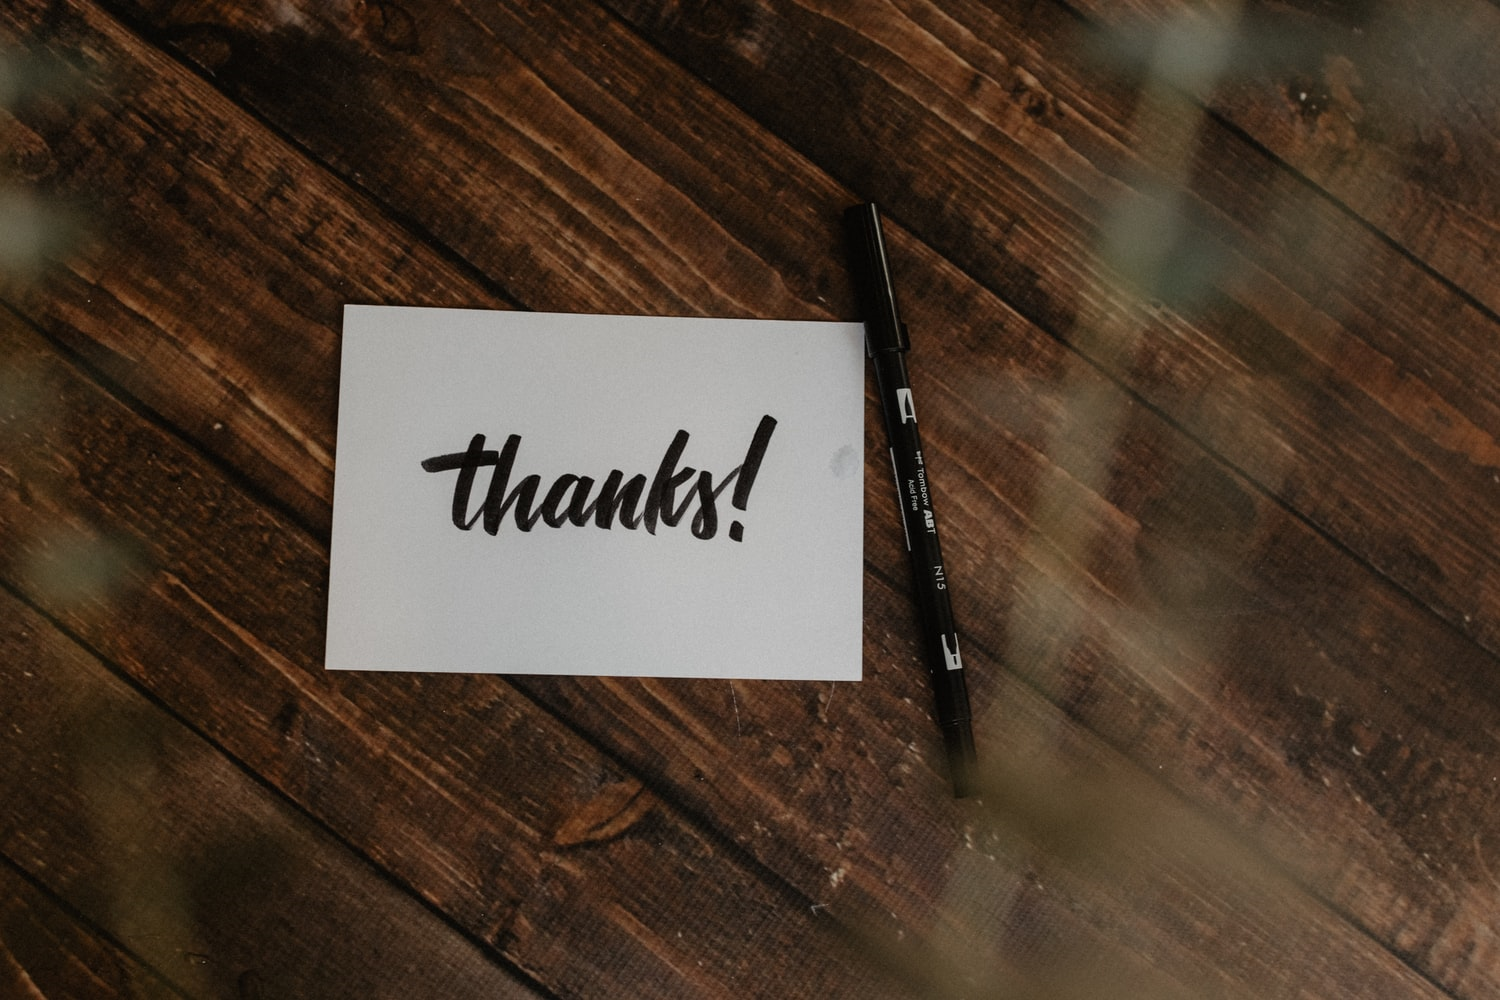 Thank you note is a simple way to engage and keep your donors loyal.